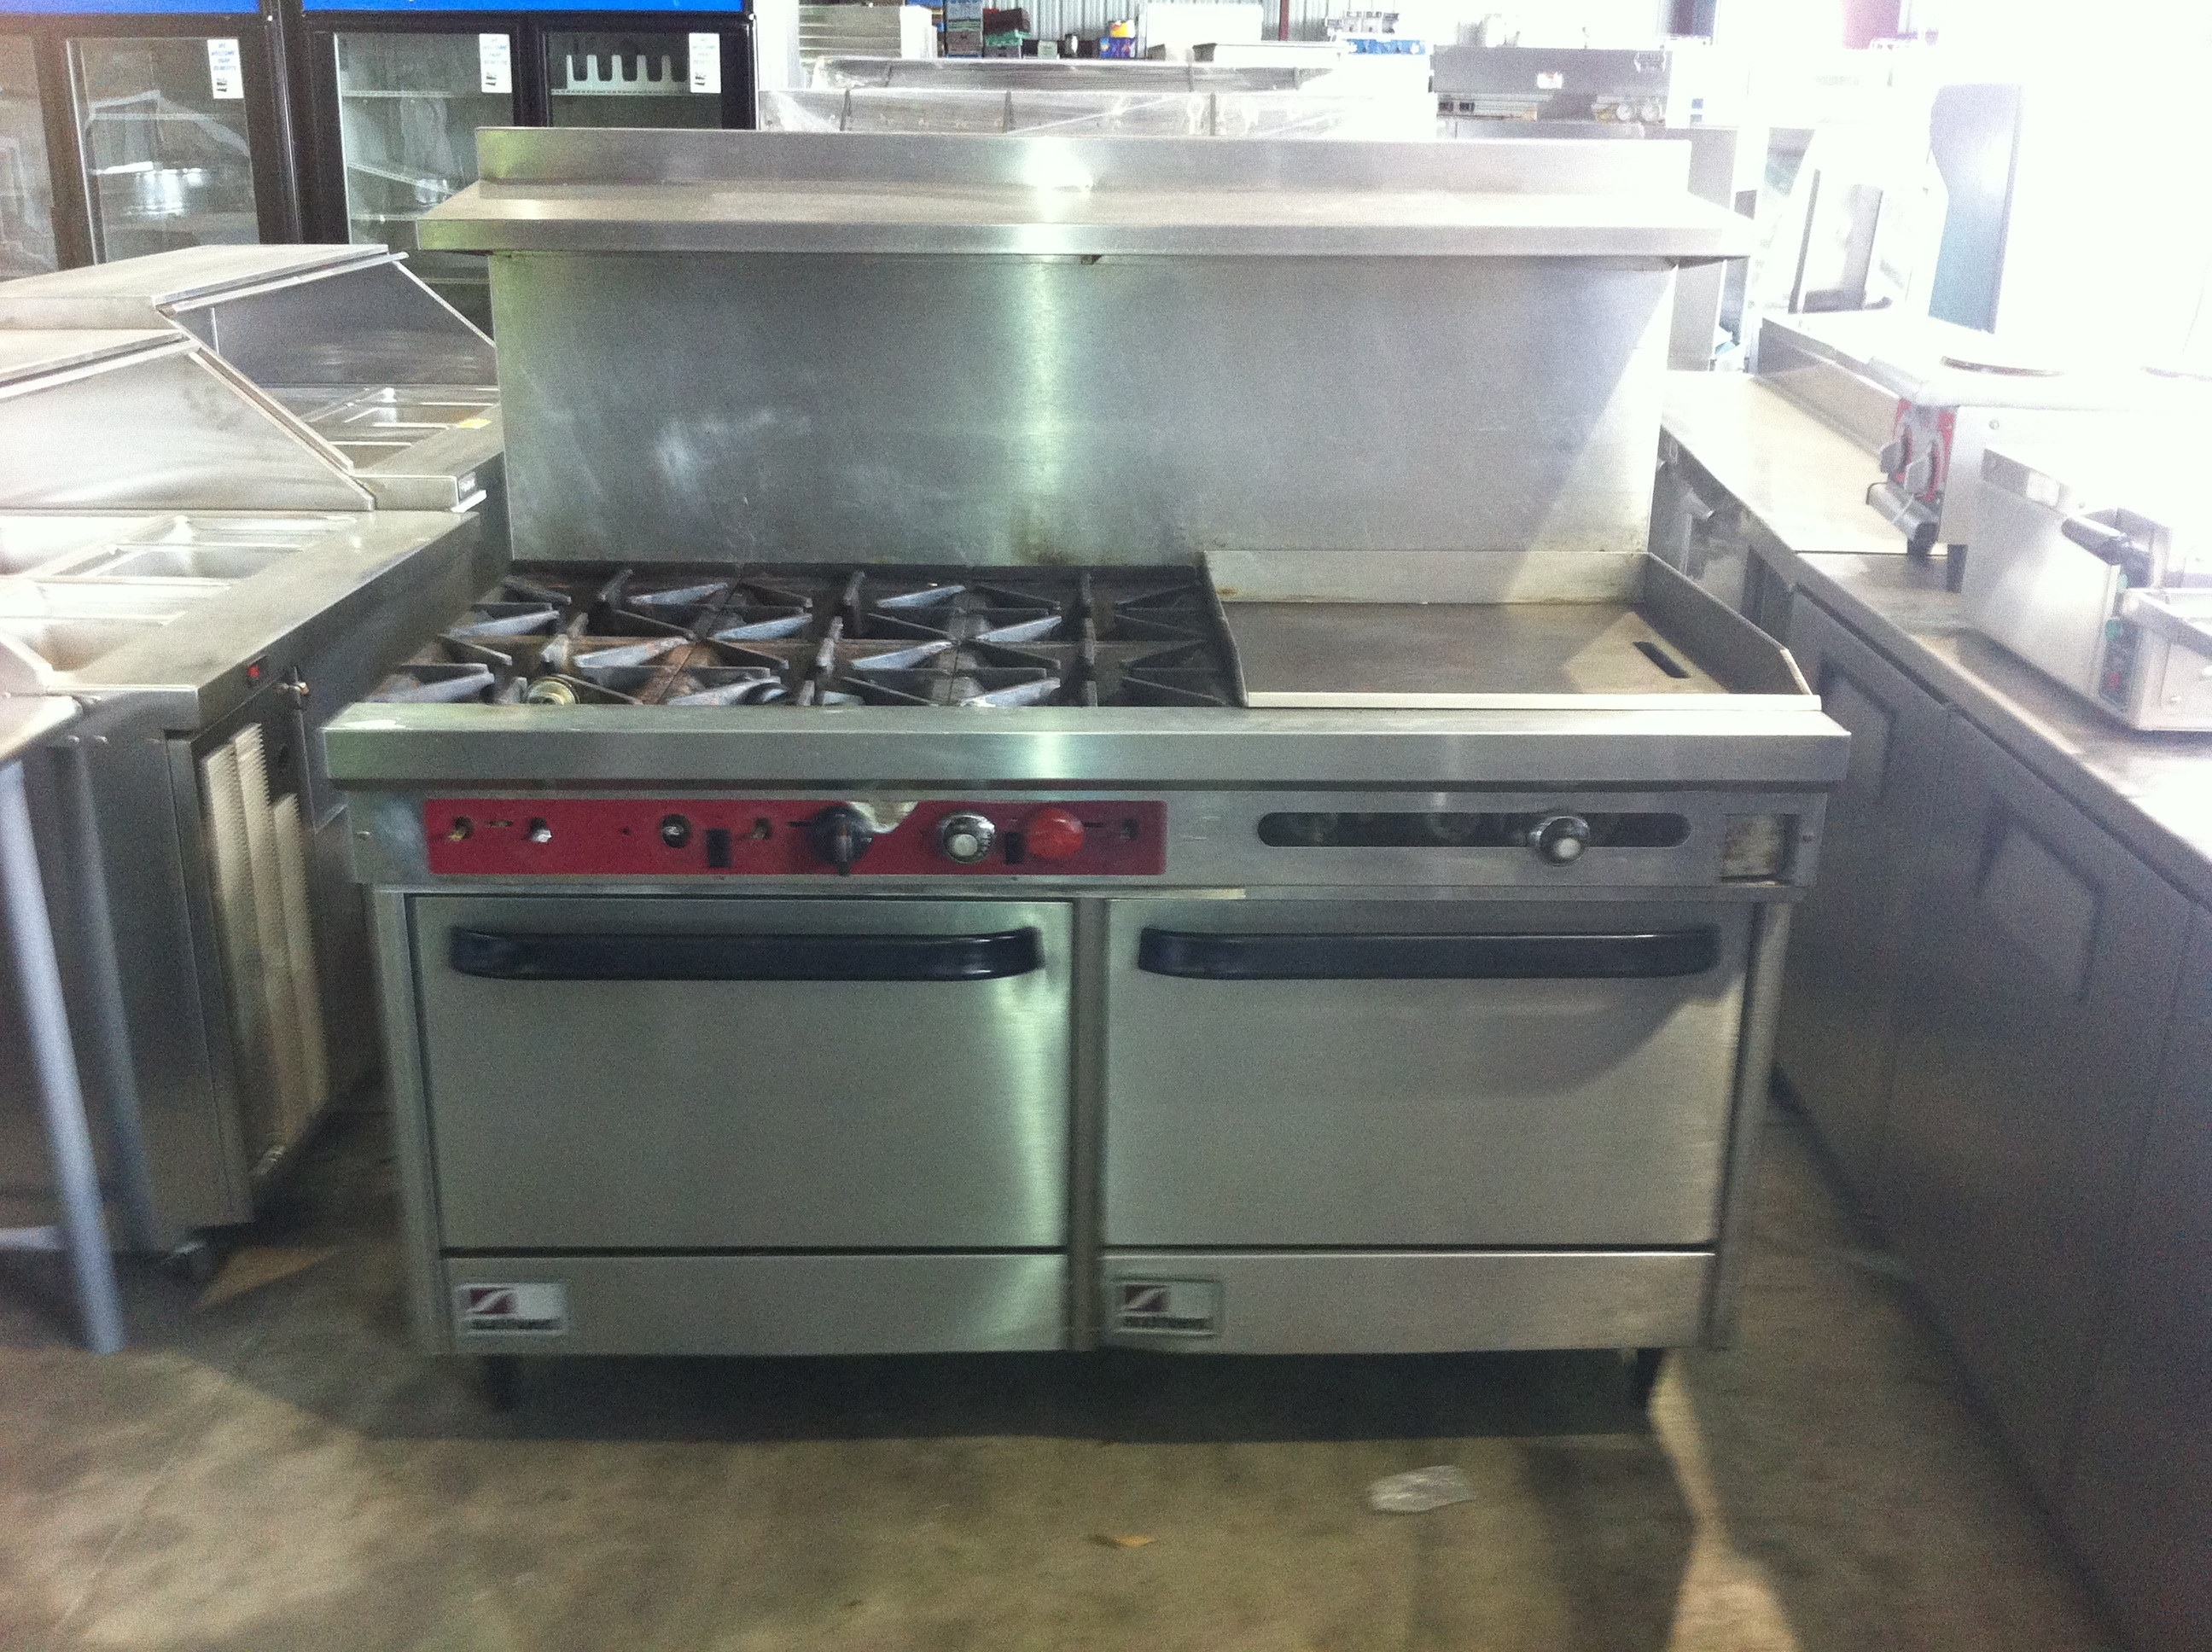 Southbend 6 burner double range oven with 24 flat griddle for Equipement cuisine